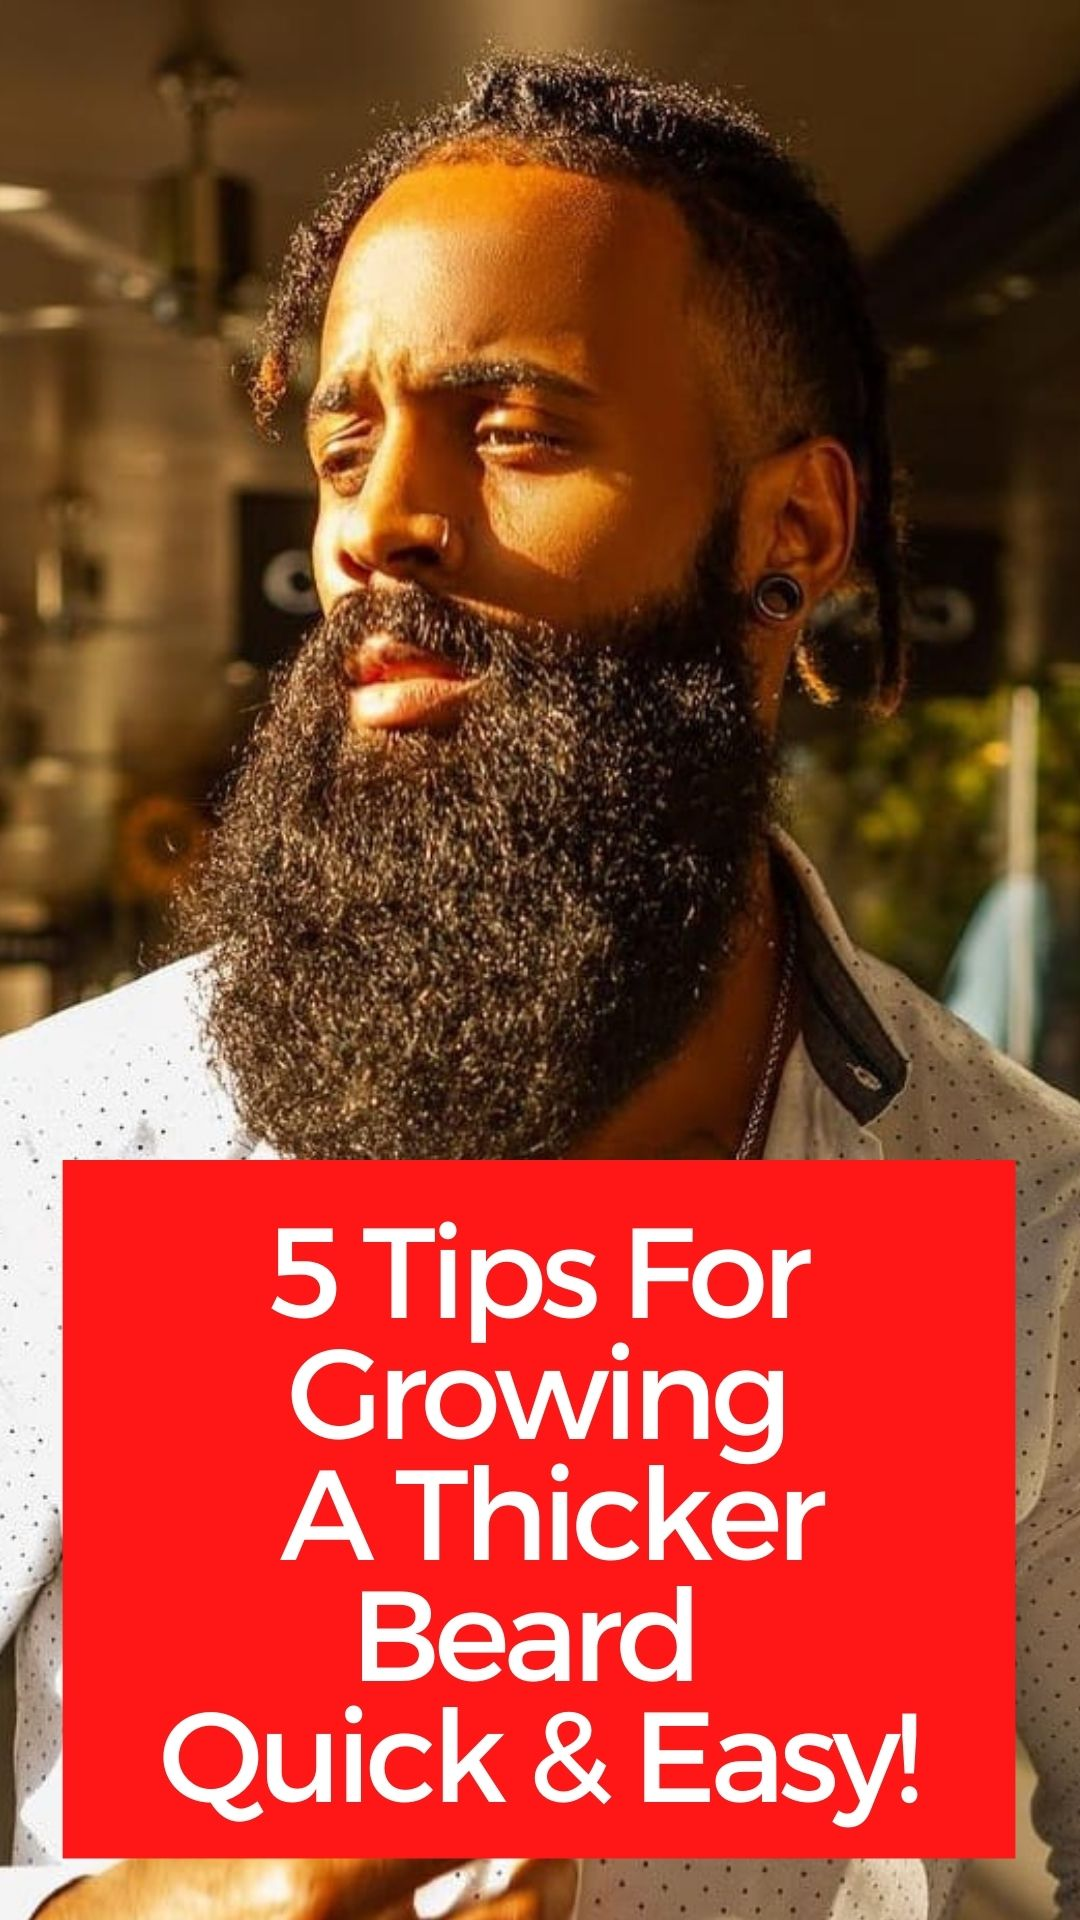 5 Tips for Growing Thick Beard